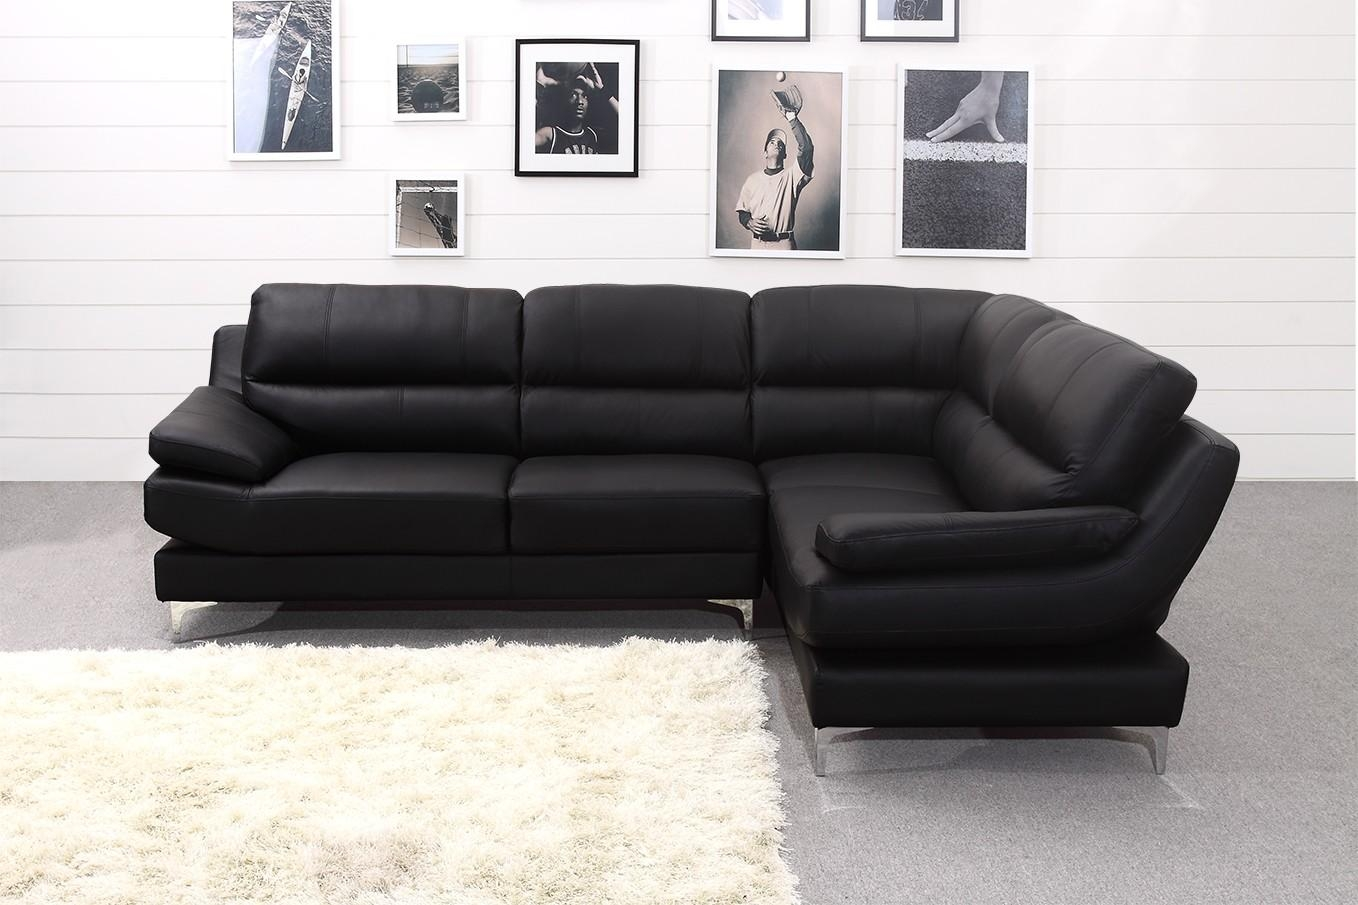 Leather Corner Sofa | Tehranmix Decoration With Regard To Black Leather Corner Sofas (View 1 of 20)